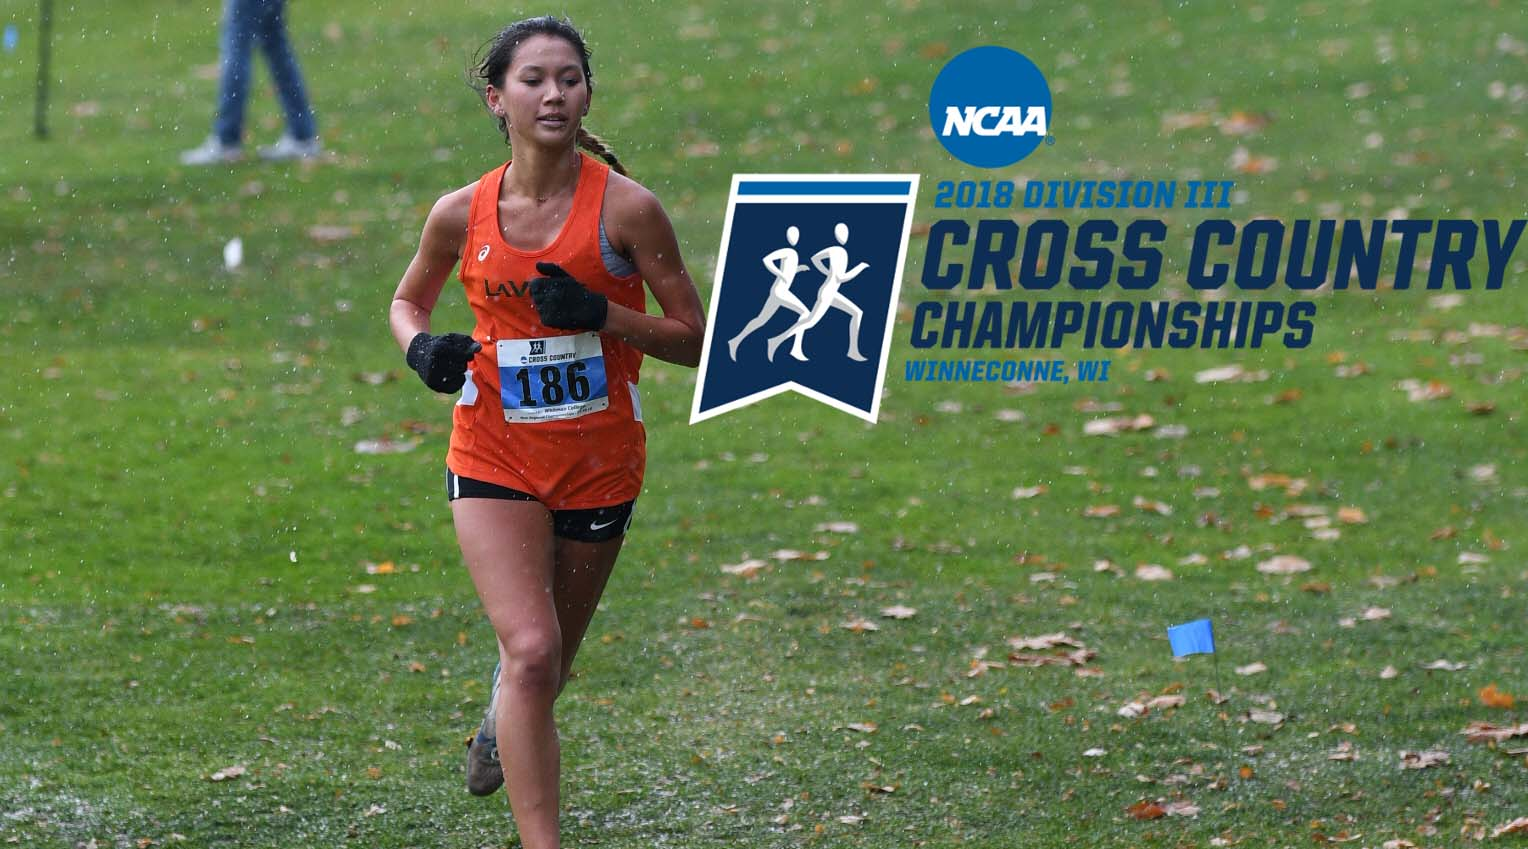 Cross Country Championships Details